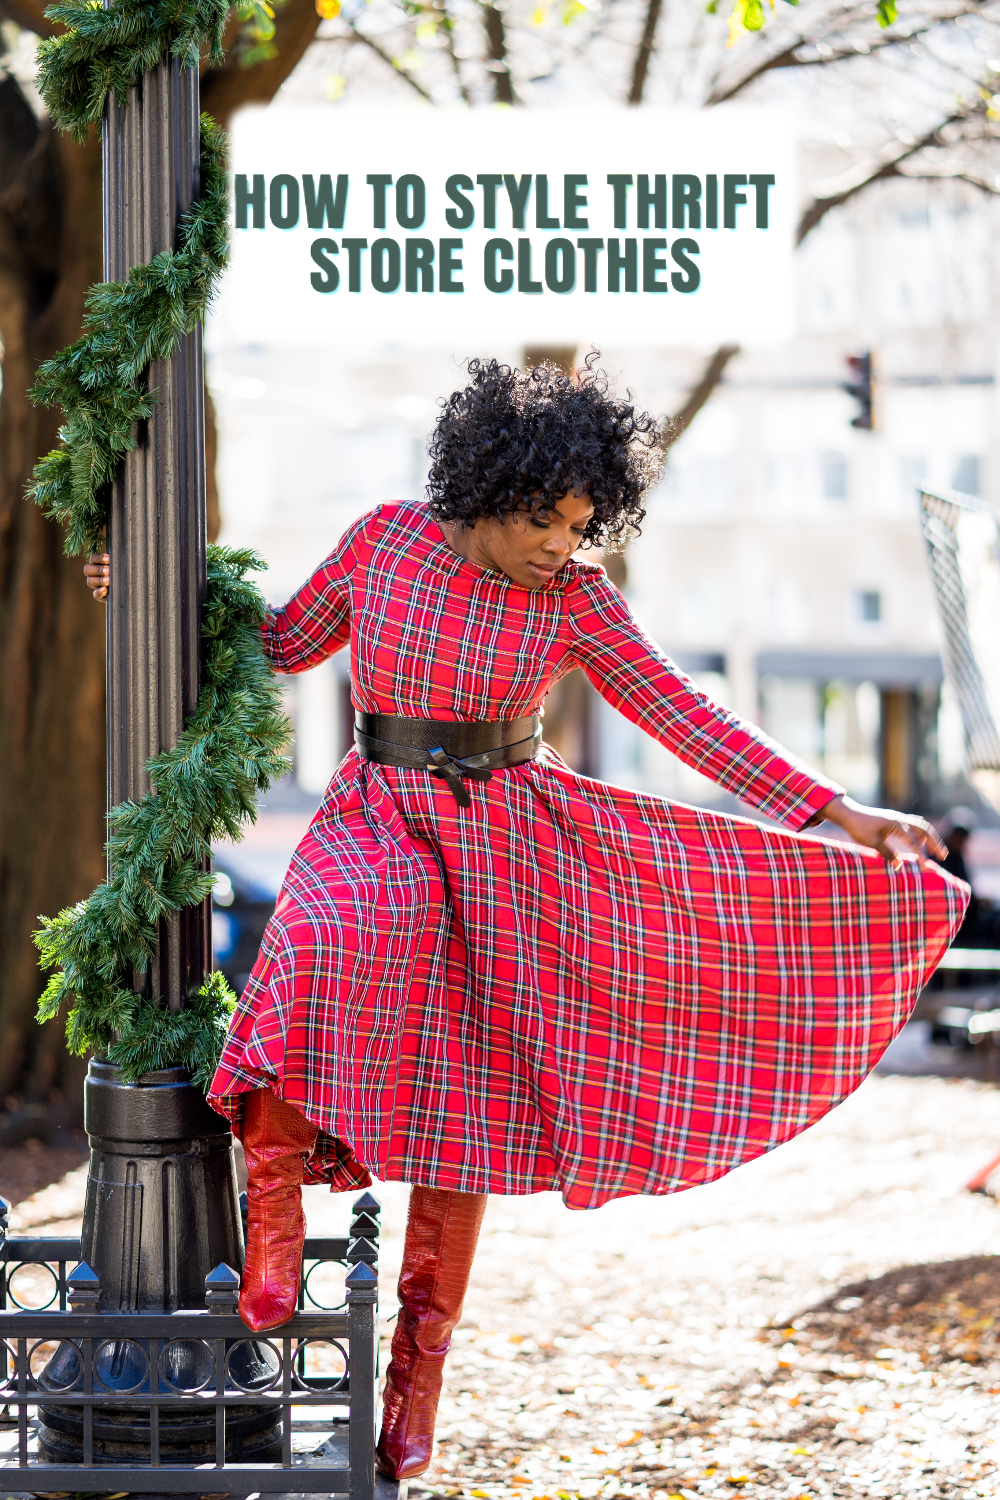 How to style thrift store clothes